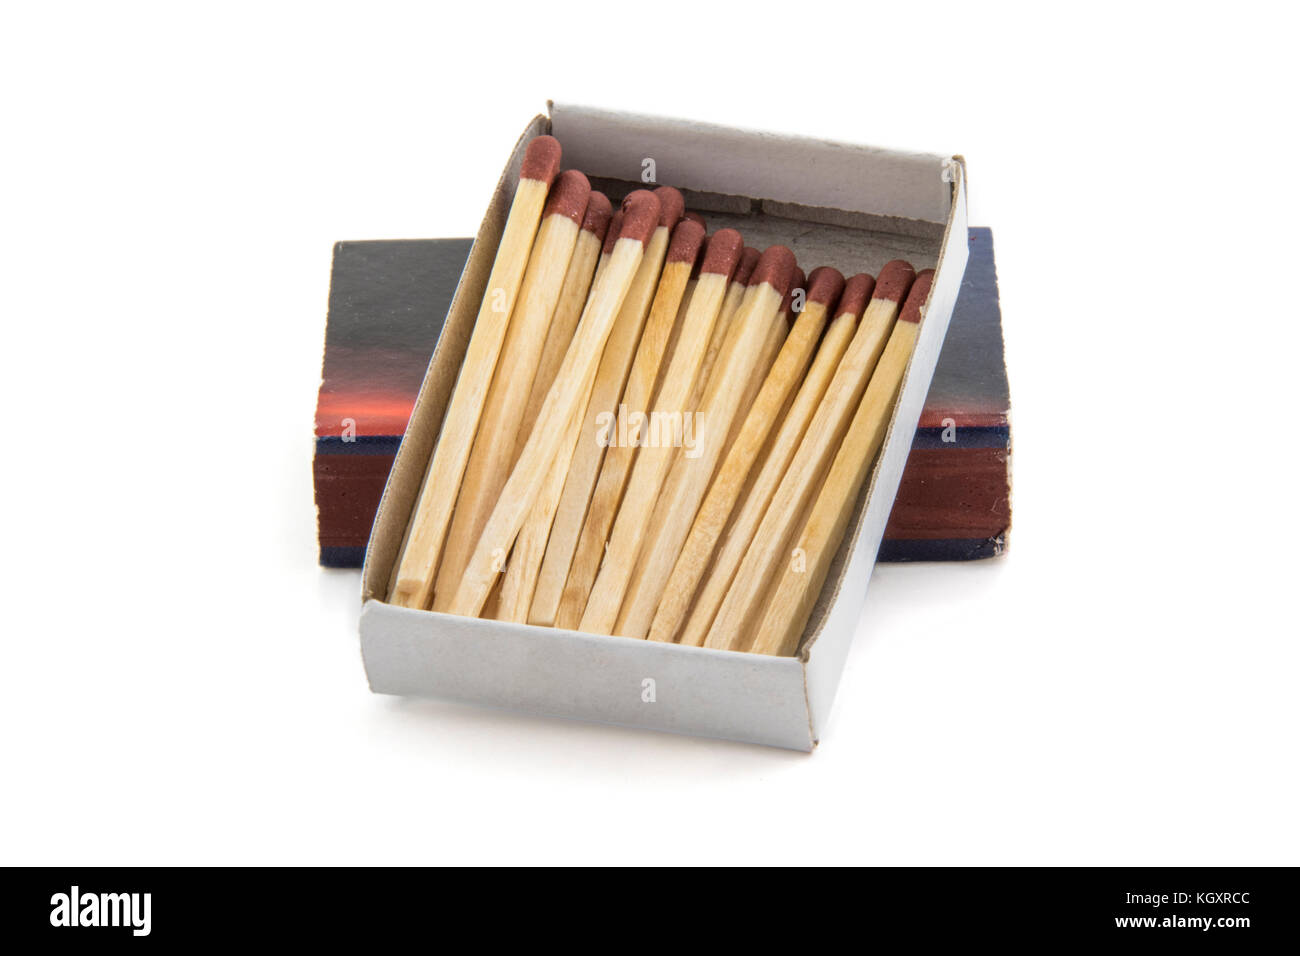 matches heap box isolated on white background - Stock Image